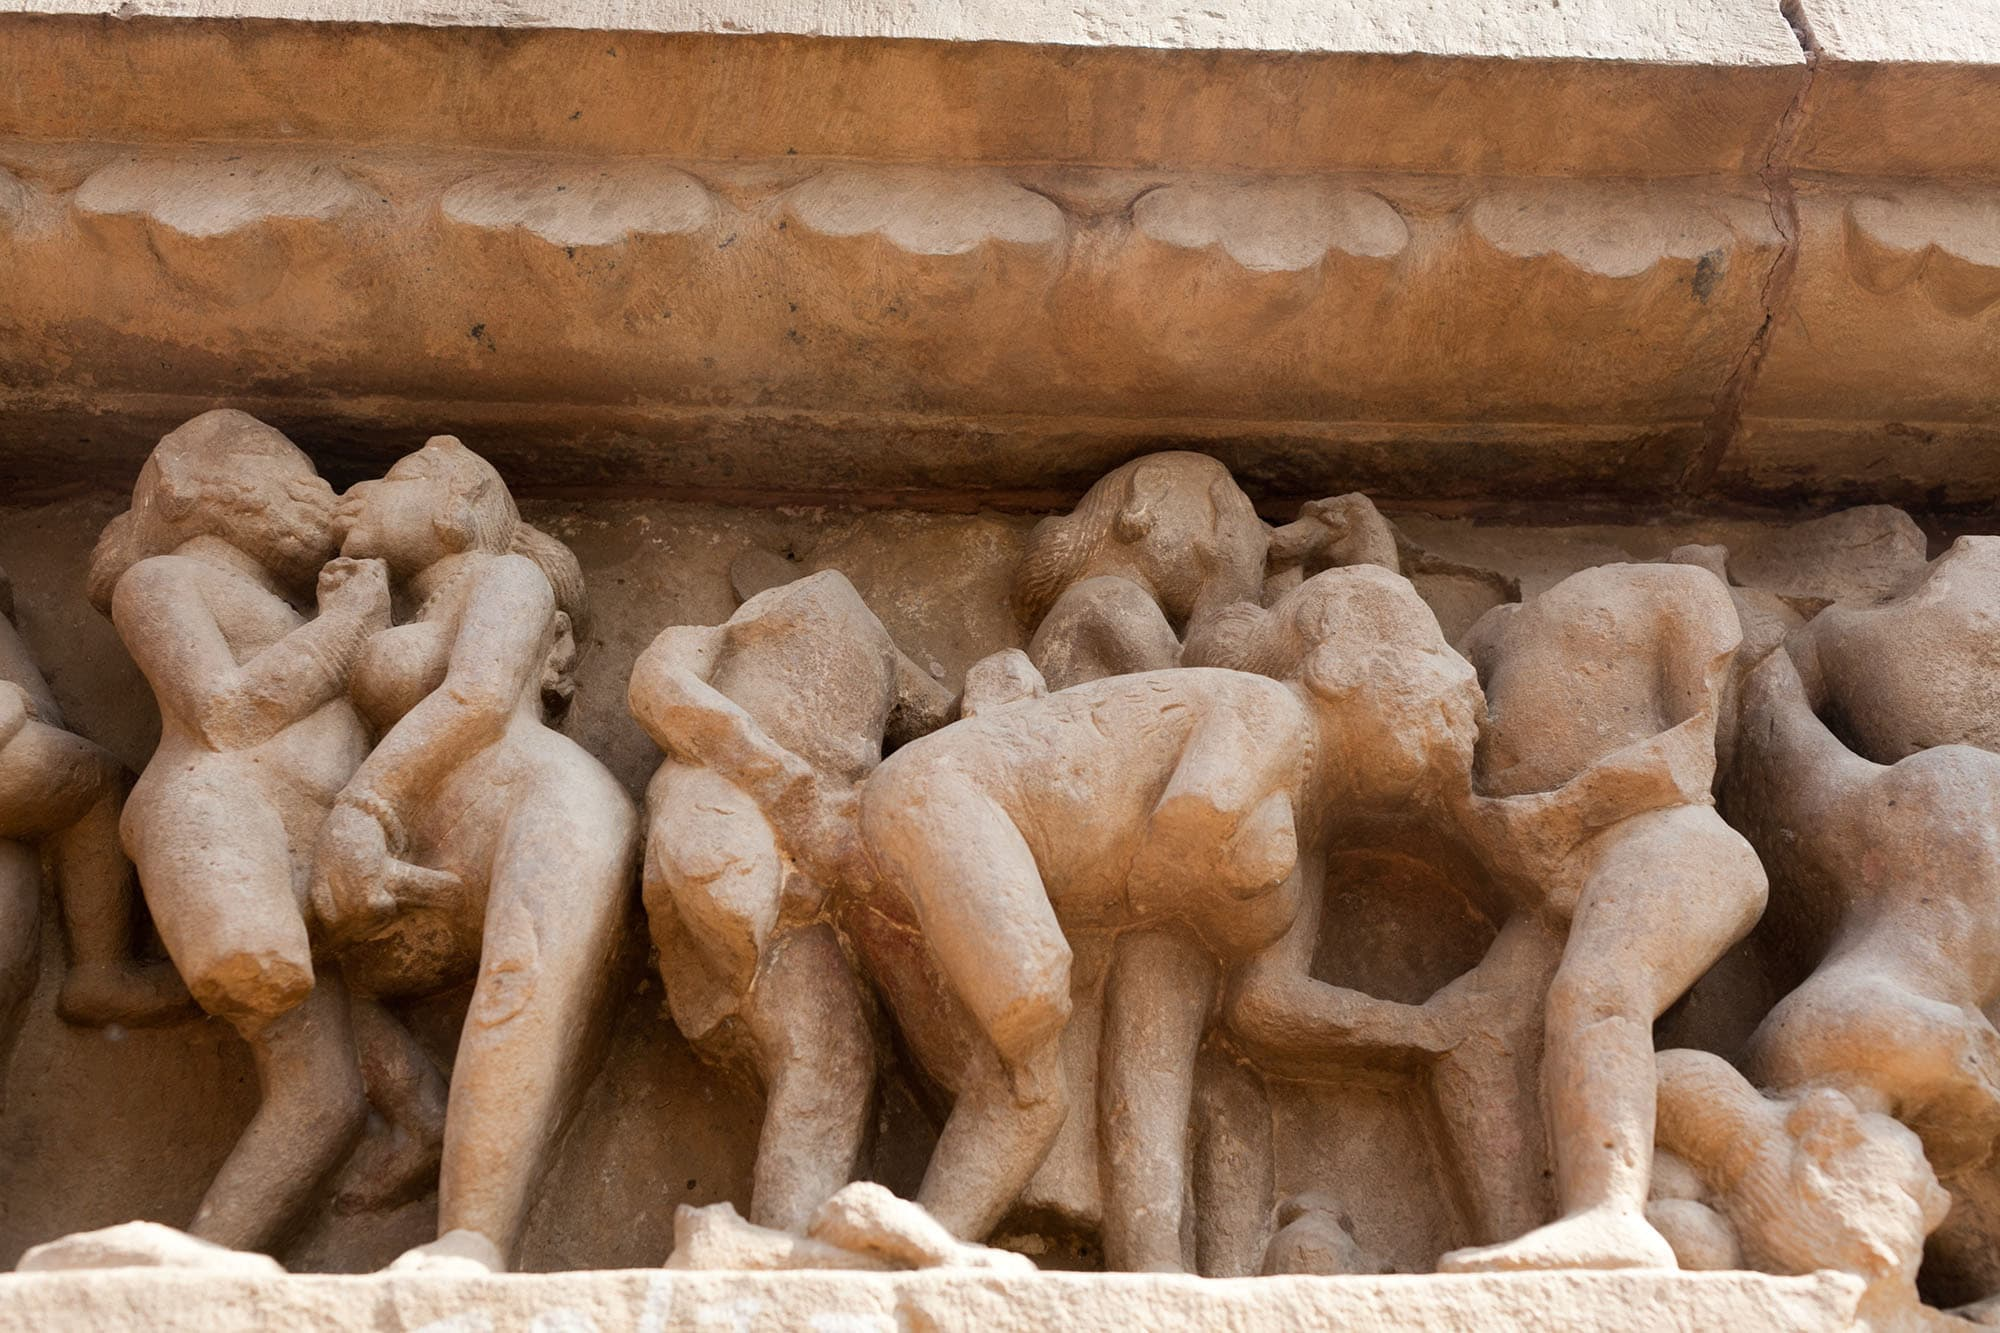 Khajuraho Sex Temples -- Western Group sex temples in Khajuraho, India.